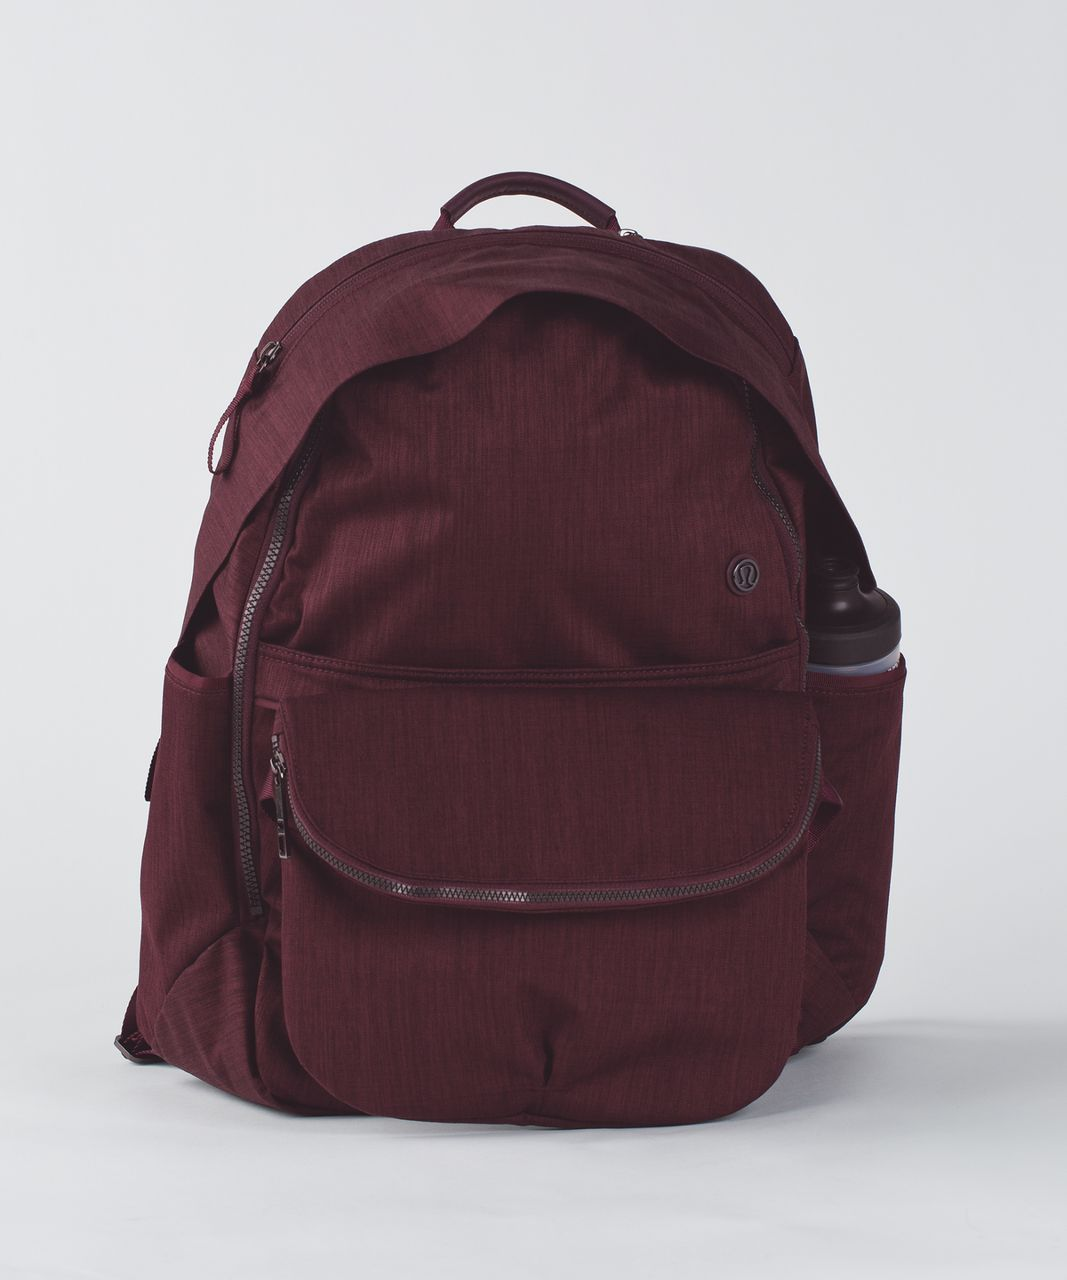 57e1879b4d Lululemon All Day Backpack - Bordeaux Drama - lulu fanatics